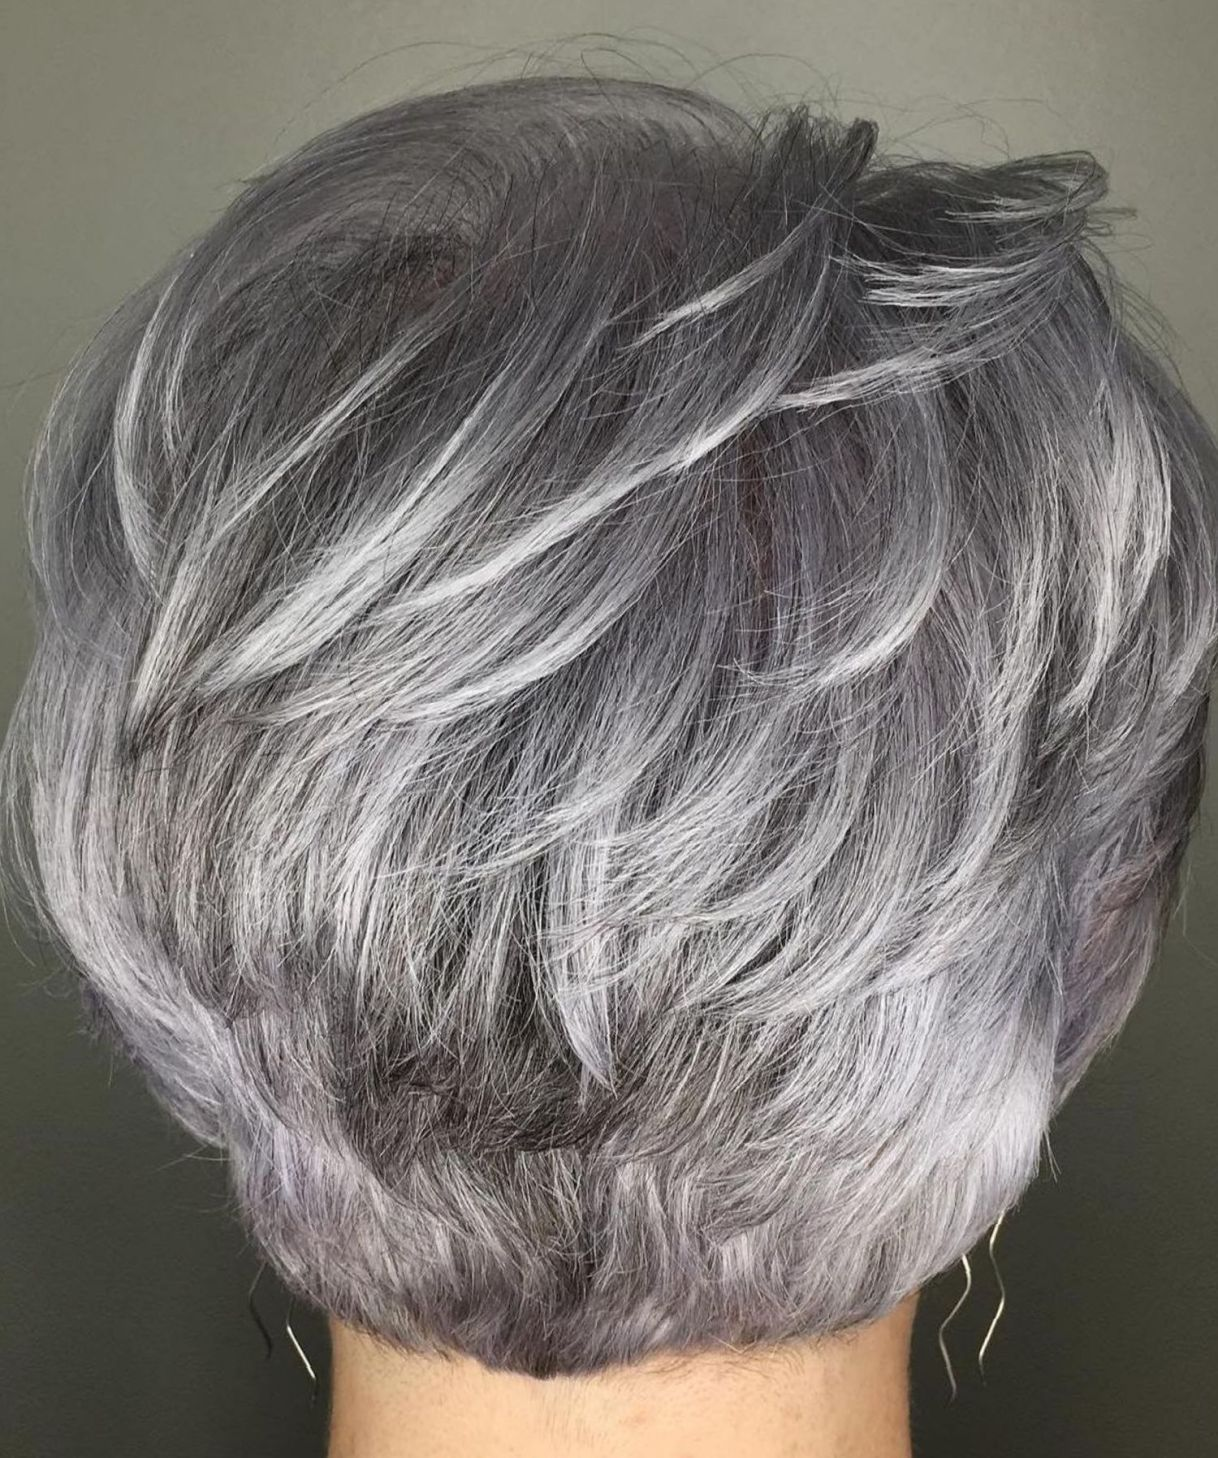 Feathered Gray Pixie Hair Styles Gorgeous Gray Hair Short Hair With Layers